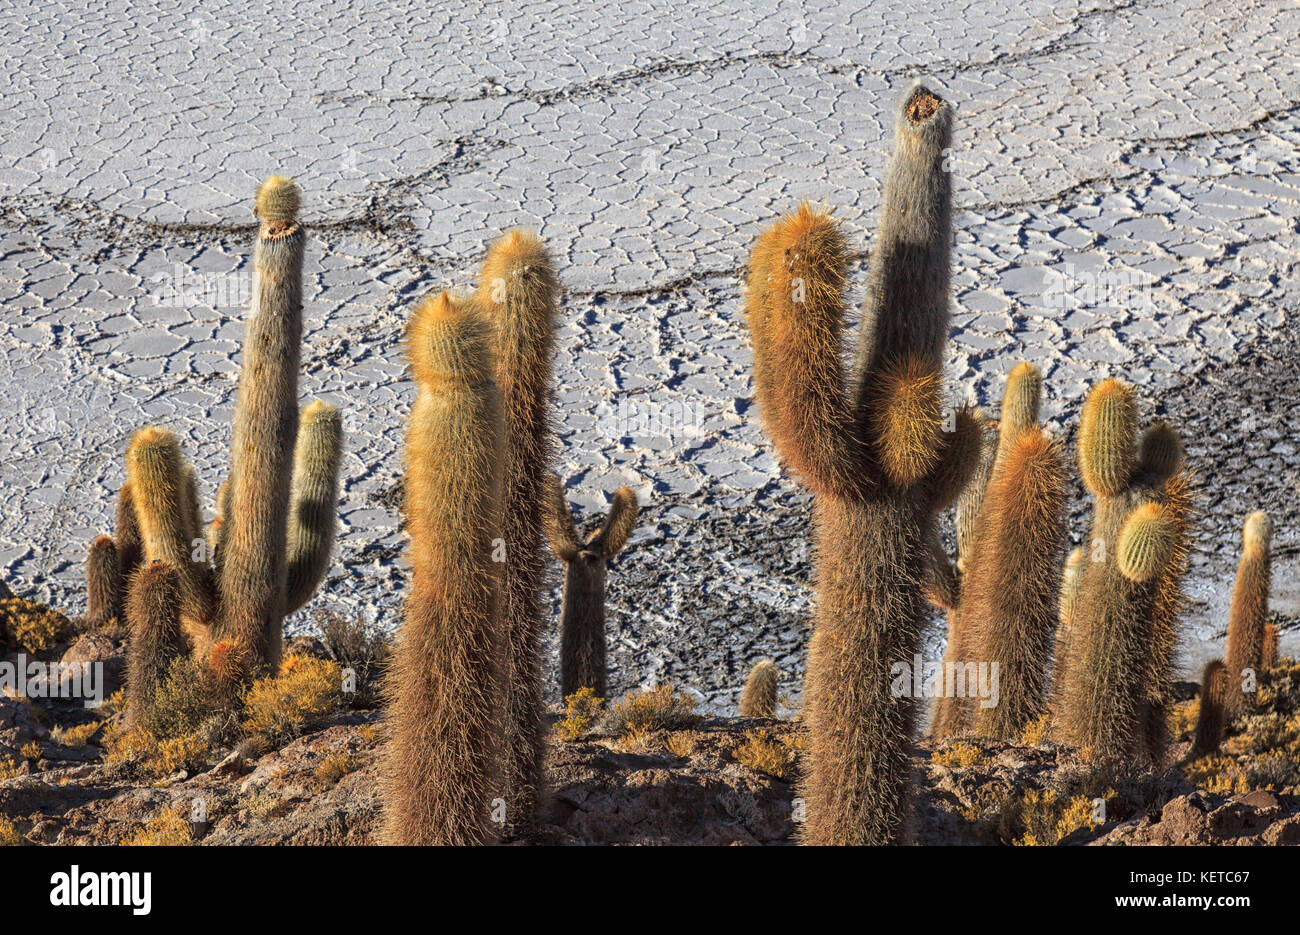 Close up of cactus géants sur les collines et les rochers de la Isla Incahuasi situé dans le Salar de Photo Stock